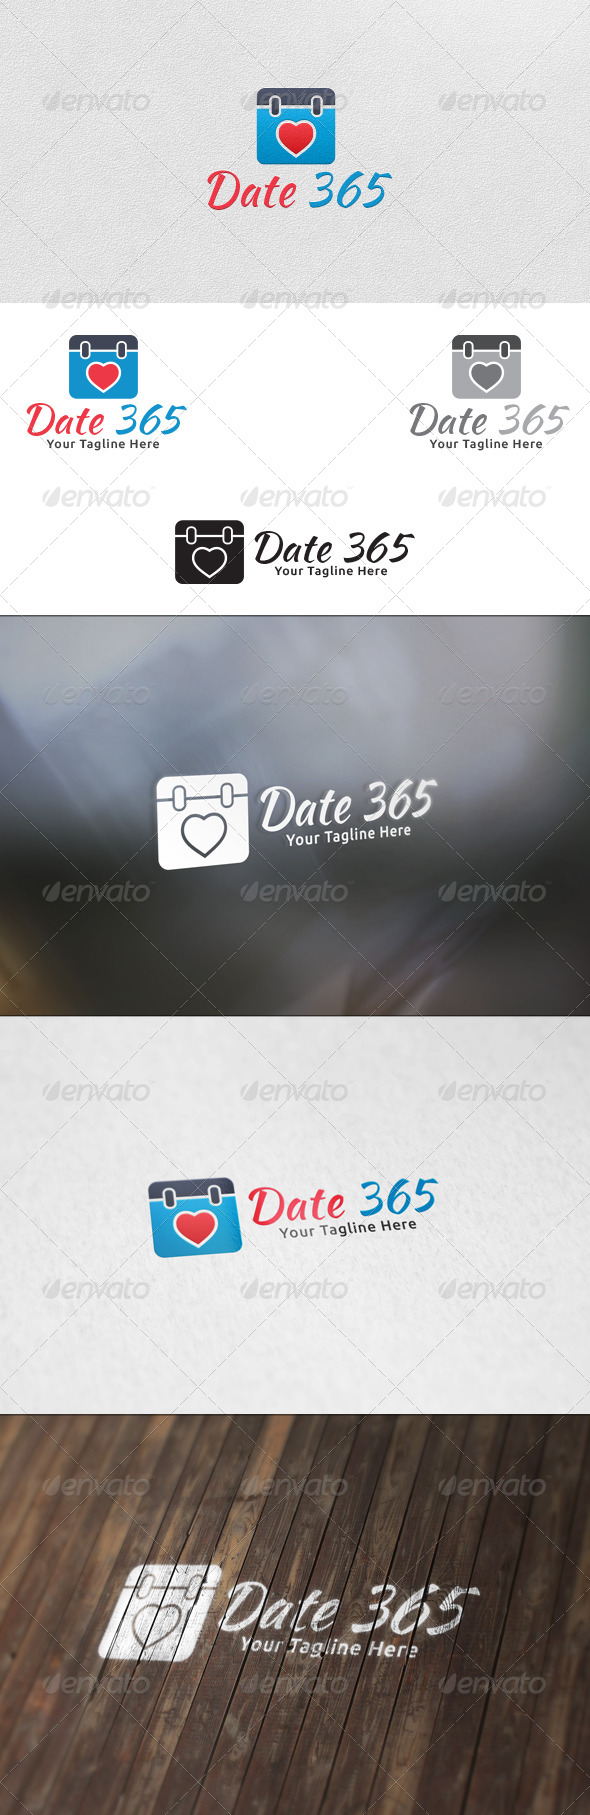 GraphicRiver Date 365 Logo Template 5965156